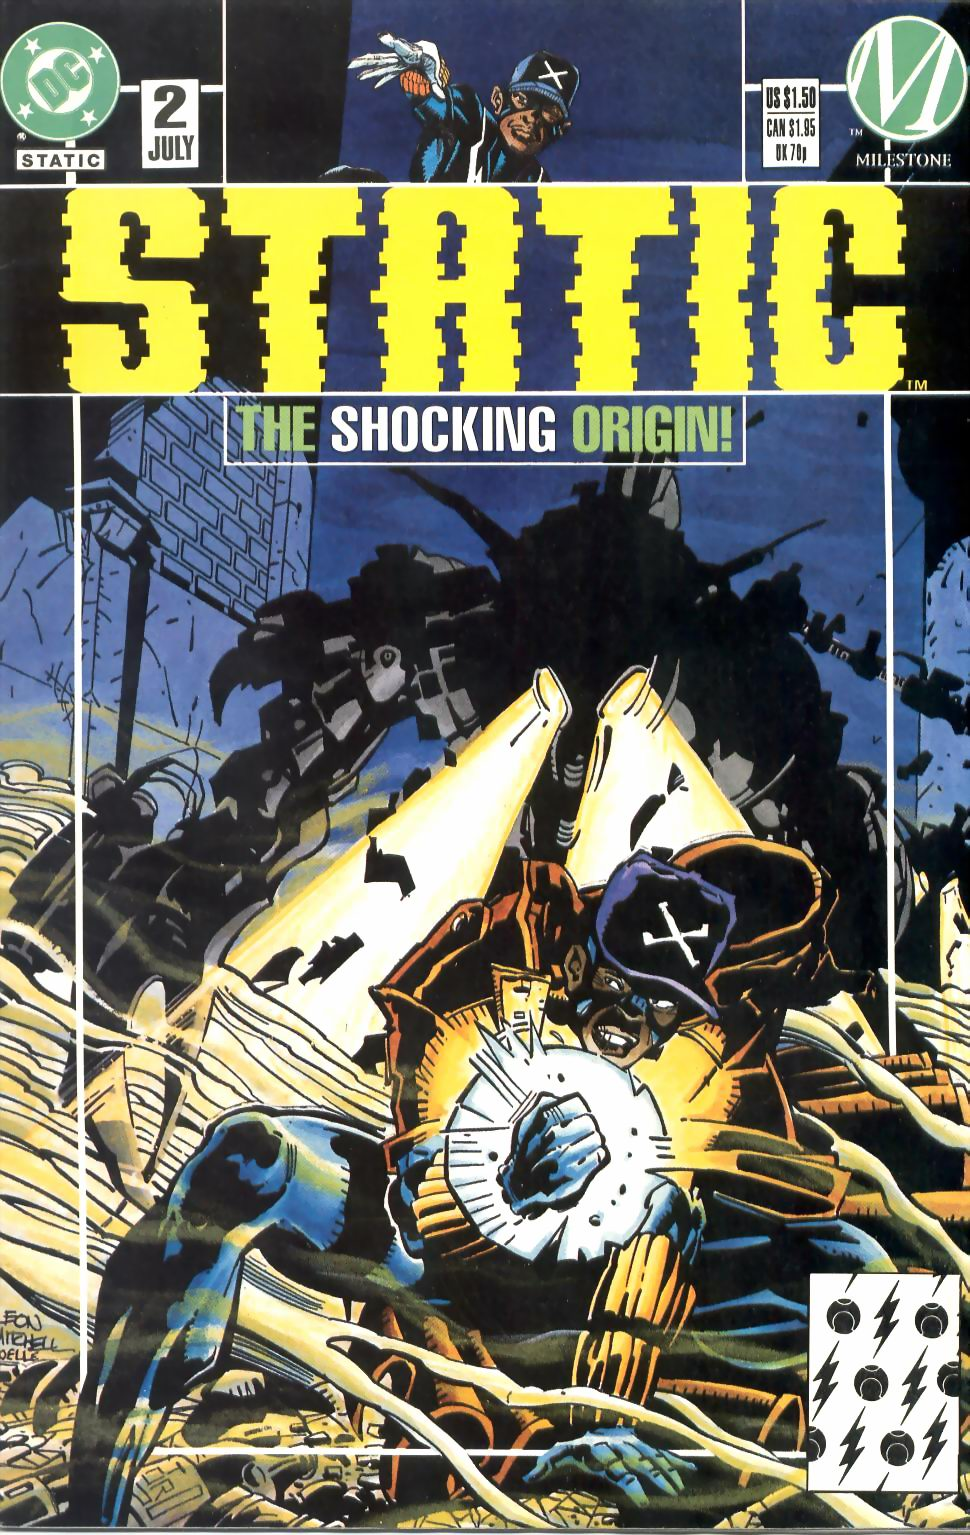 Static (1993) #2, cover penciled by John Paul Leon & inked by Steve Mitchell.